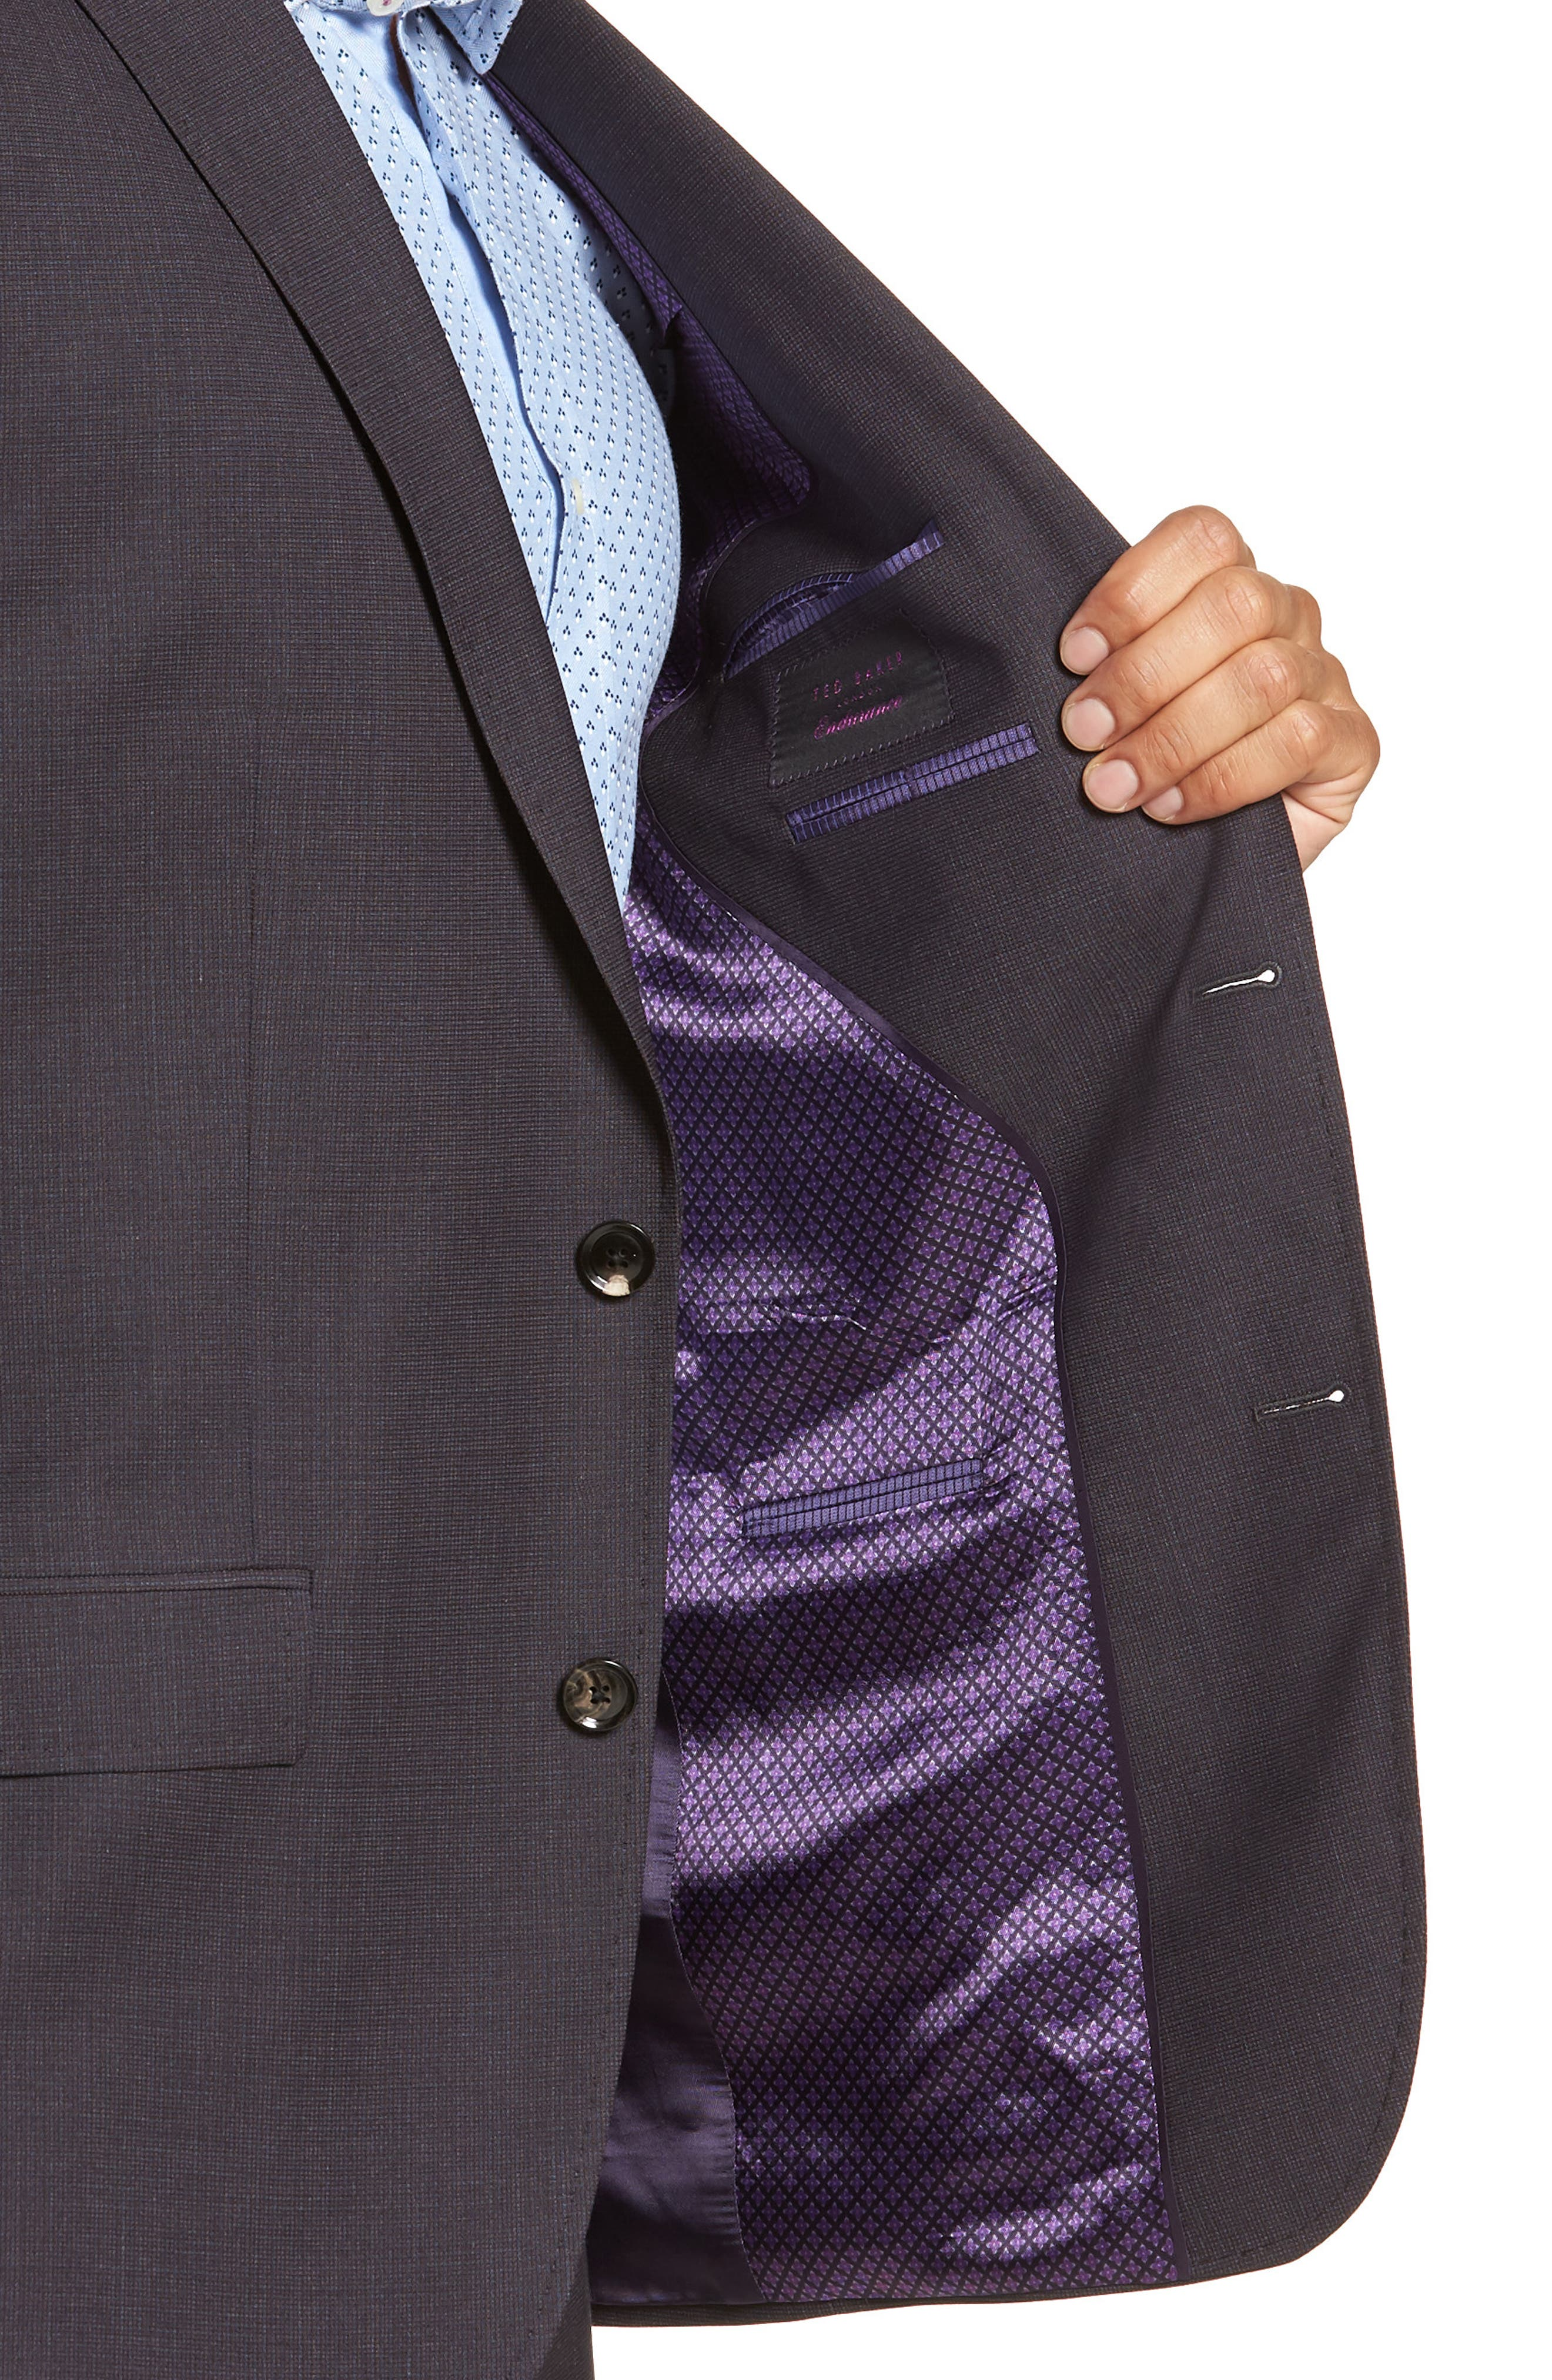 Jay Trim Fit Solid Wool Suit,                             Alternate thumbnail 4, color,                             BROWN MULTI